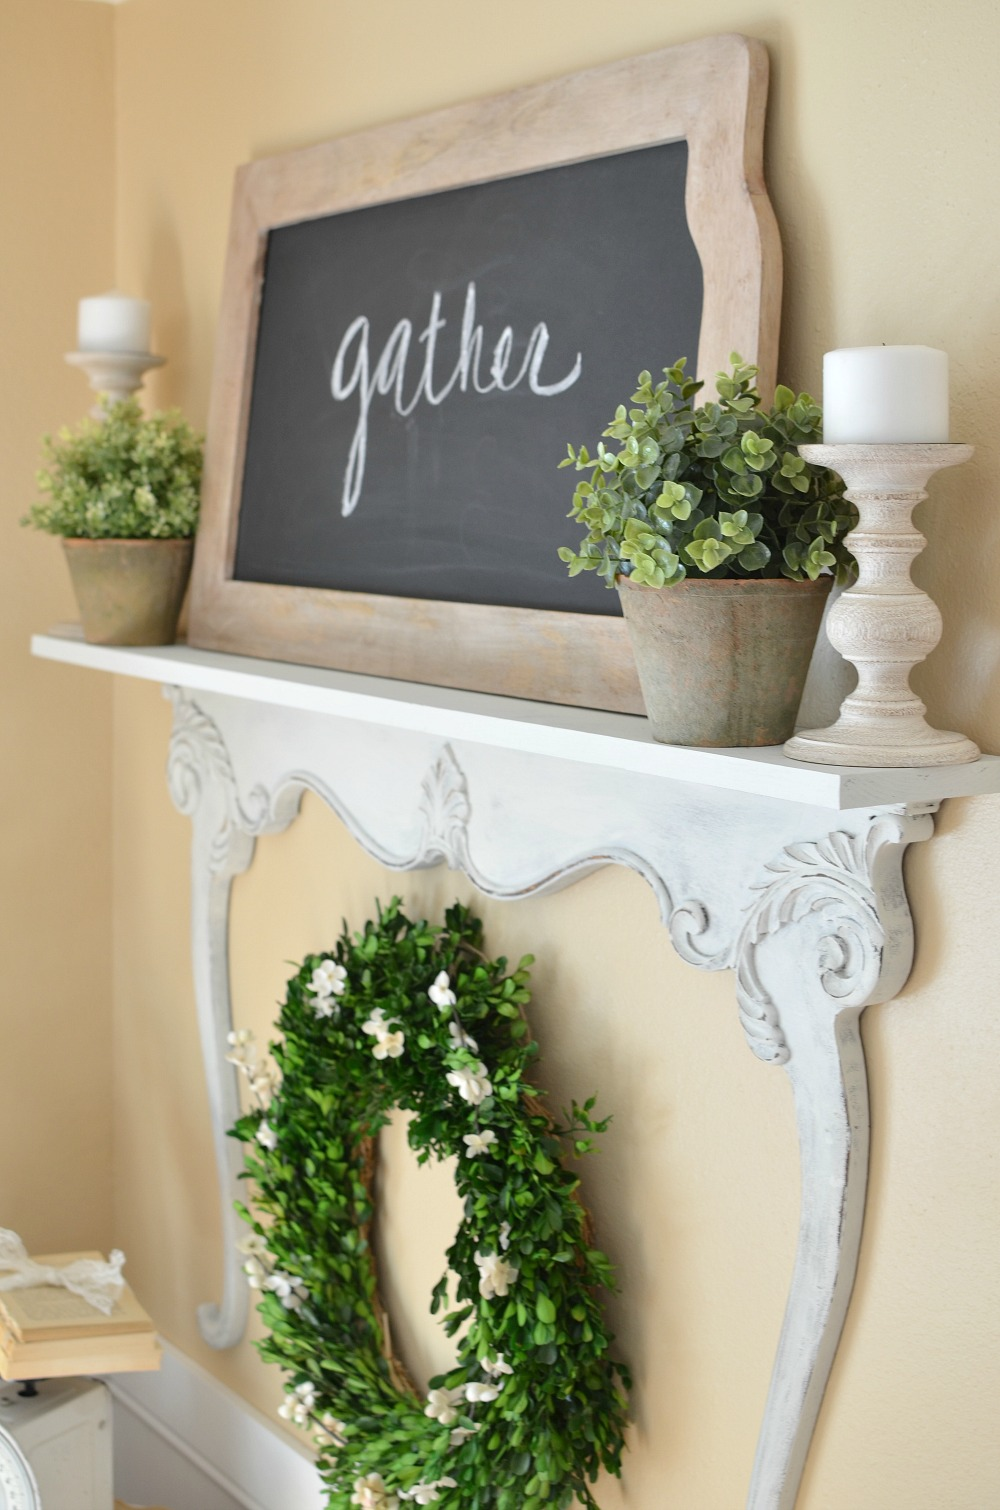 Great DIY shelf made with old dresser harp. Vintage farmhouse style decor.